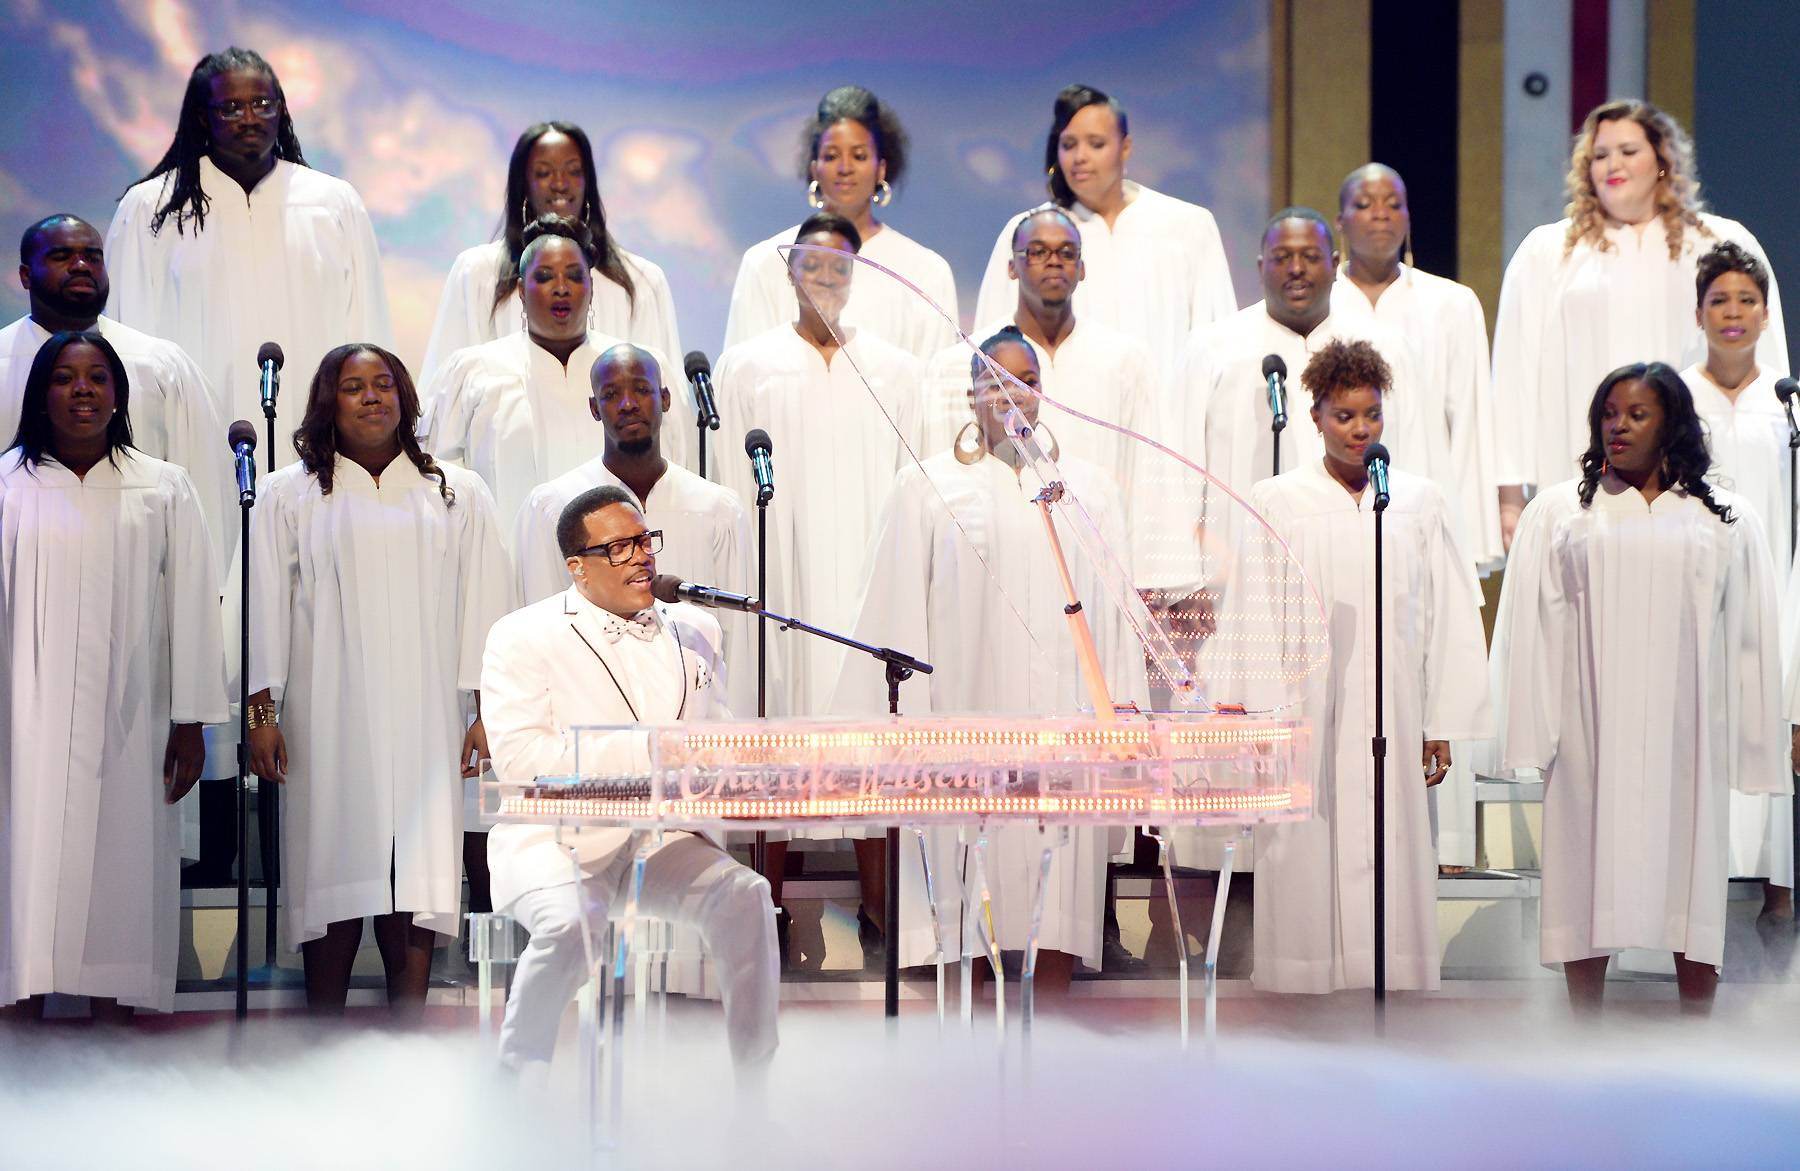 """The Charlie Wilson Experience - Charlie Wilson tore the house down! In his typical """"outstanding"""" fashion, he brought the crowd to their feet with an epic performance of """"If I Believe.""""(Photo: Jason Kempin/Getty Images for BET)"""